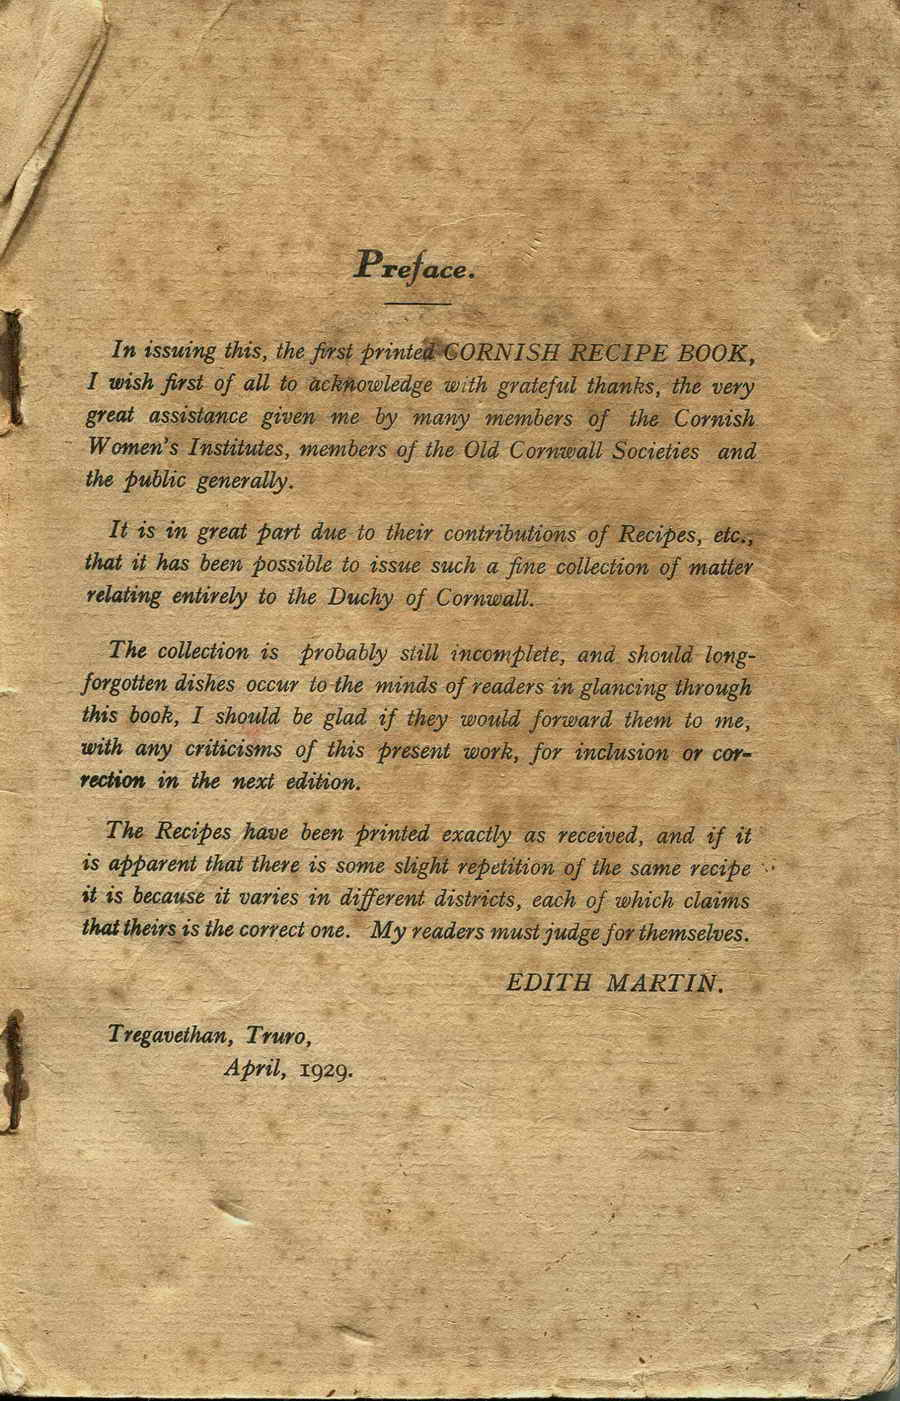 Preface to the 1929 first printed Cornish recipe book